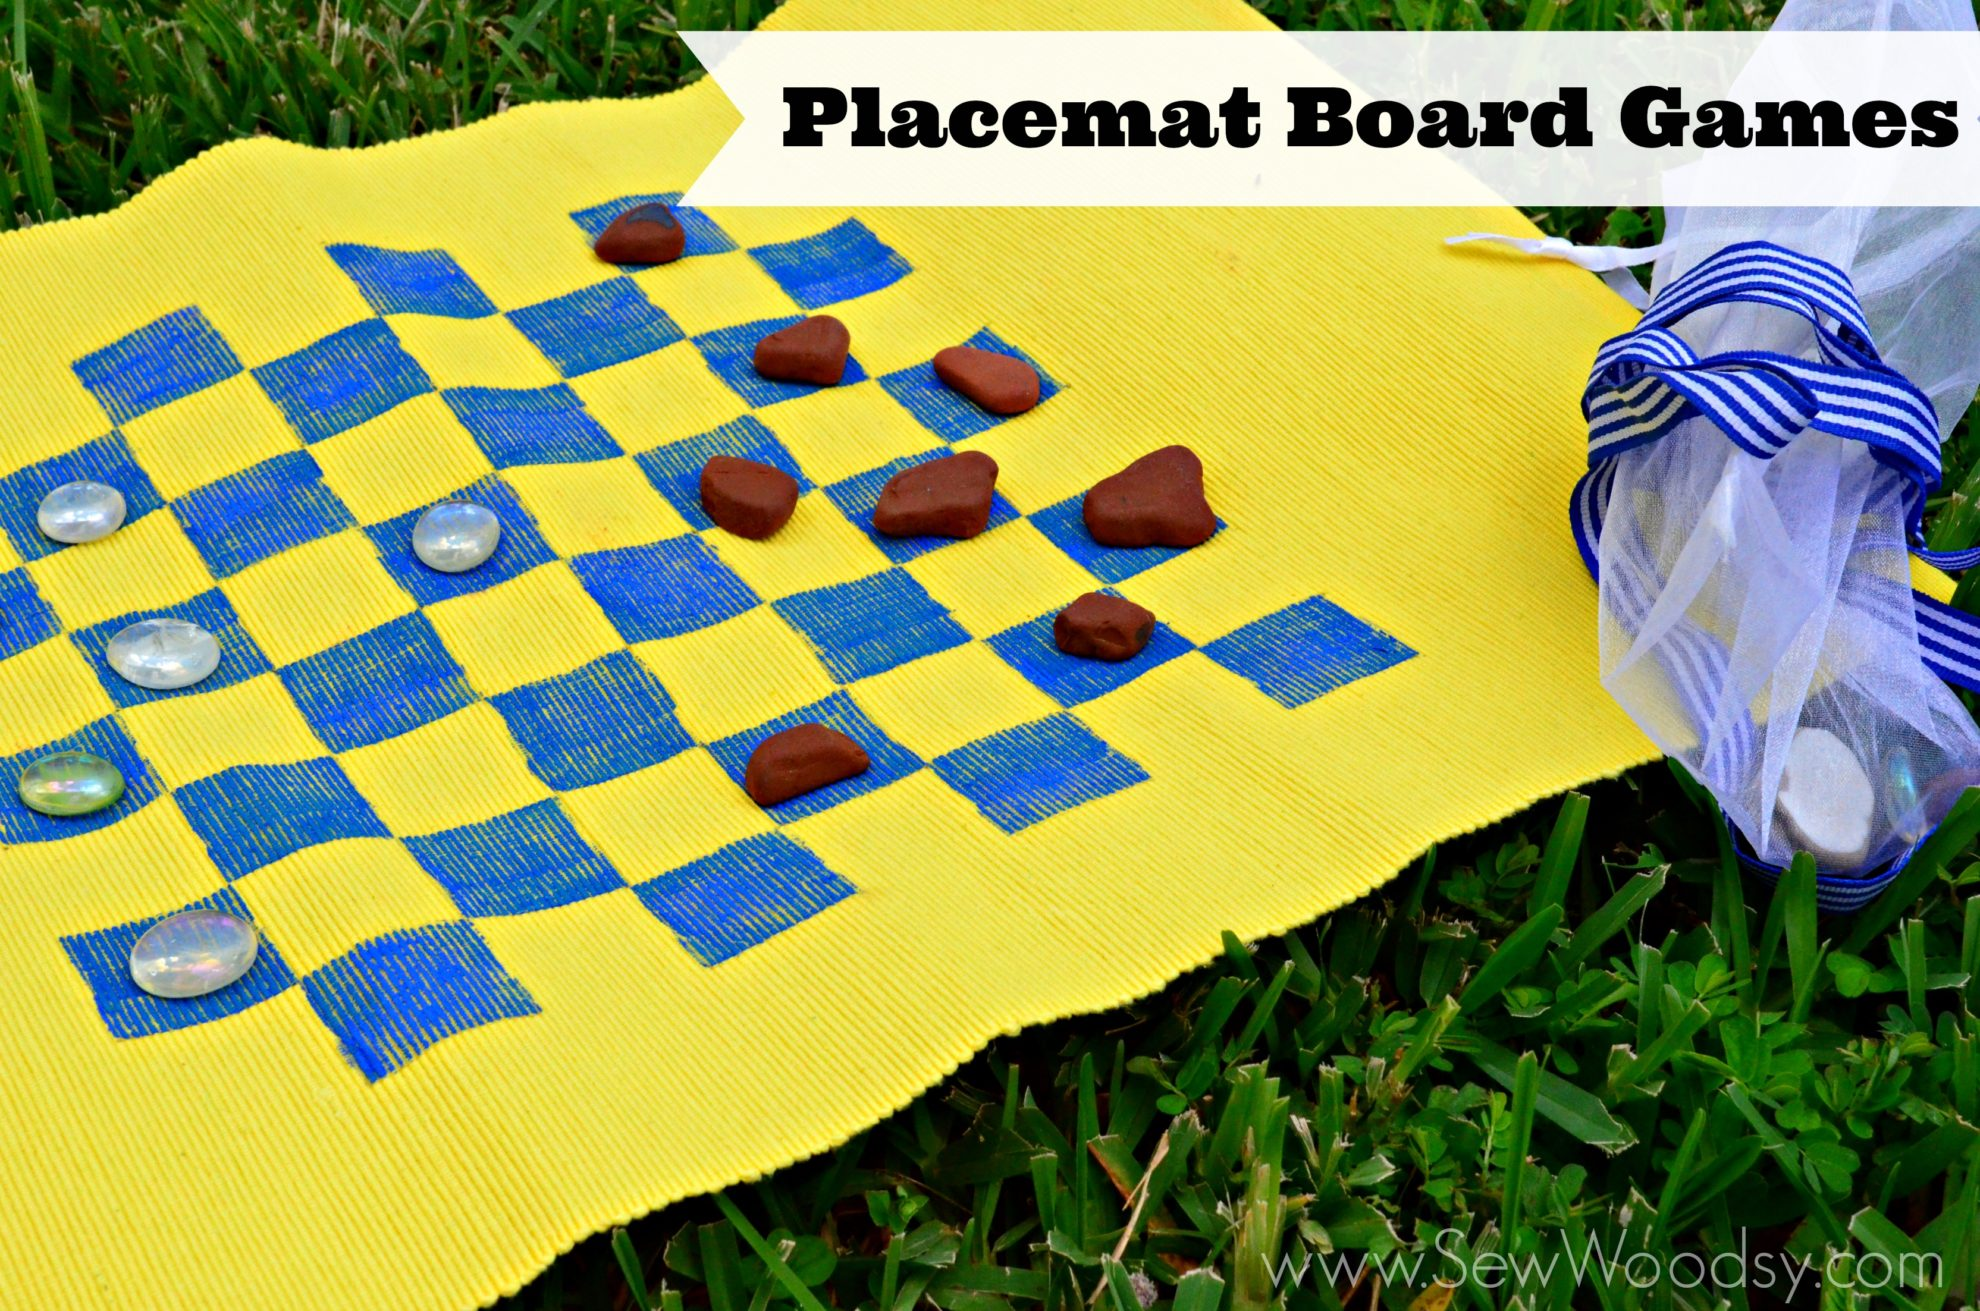 Placemat Board Games via SewWoodsy.com